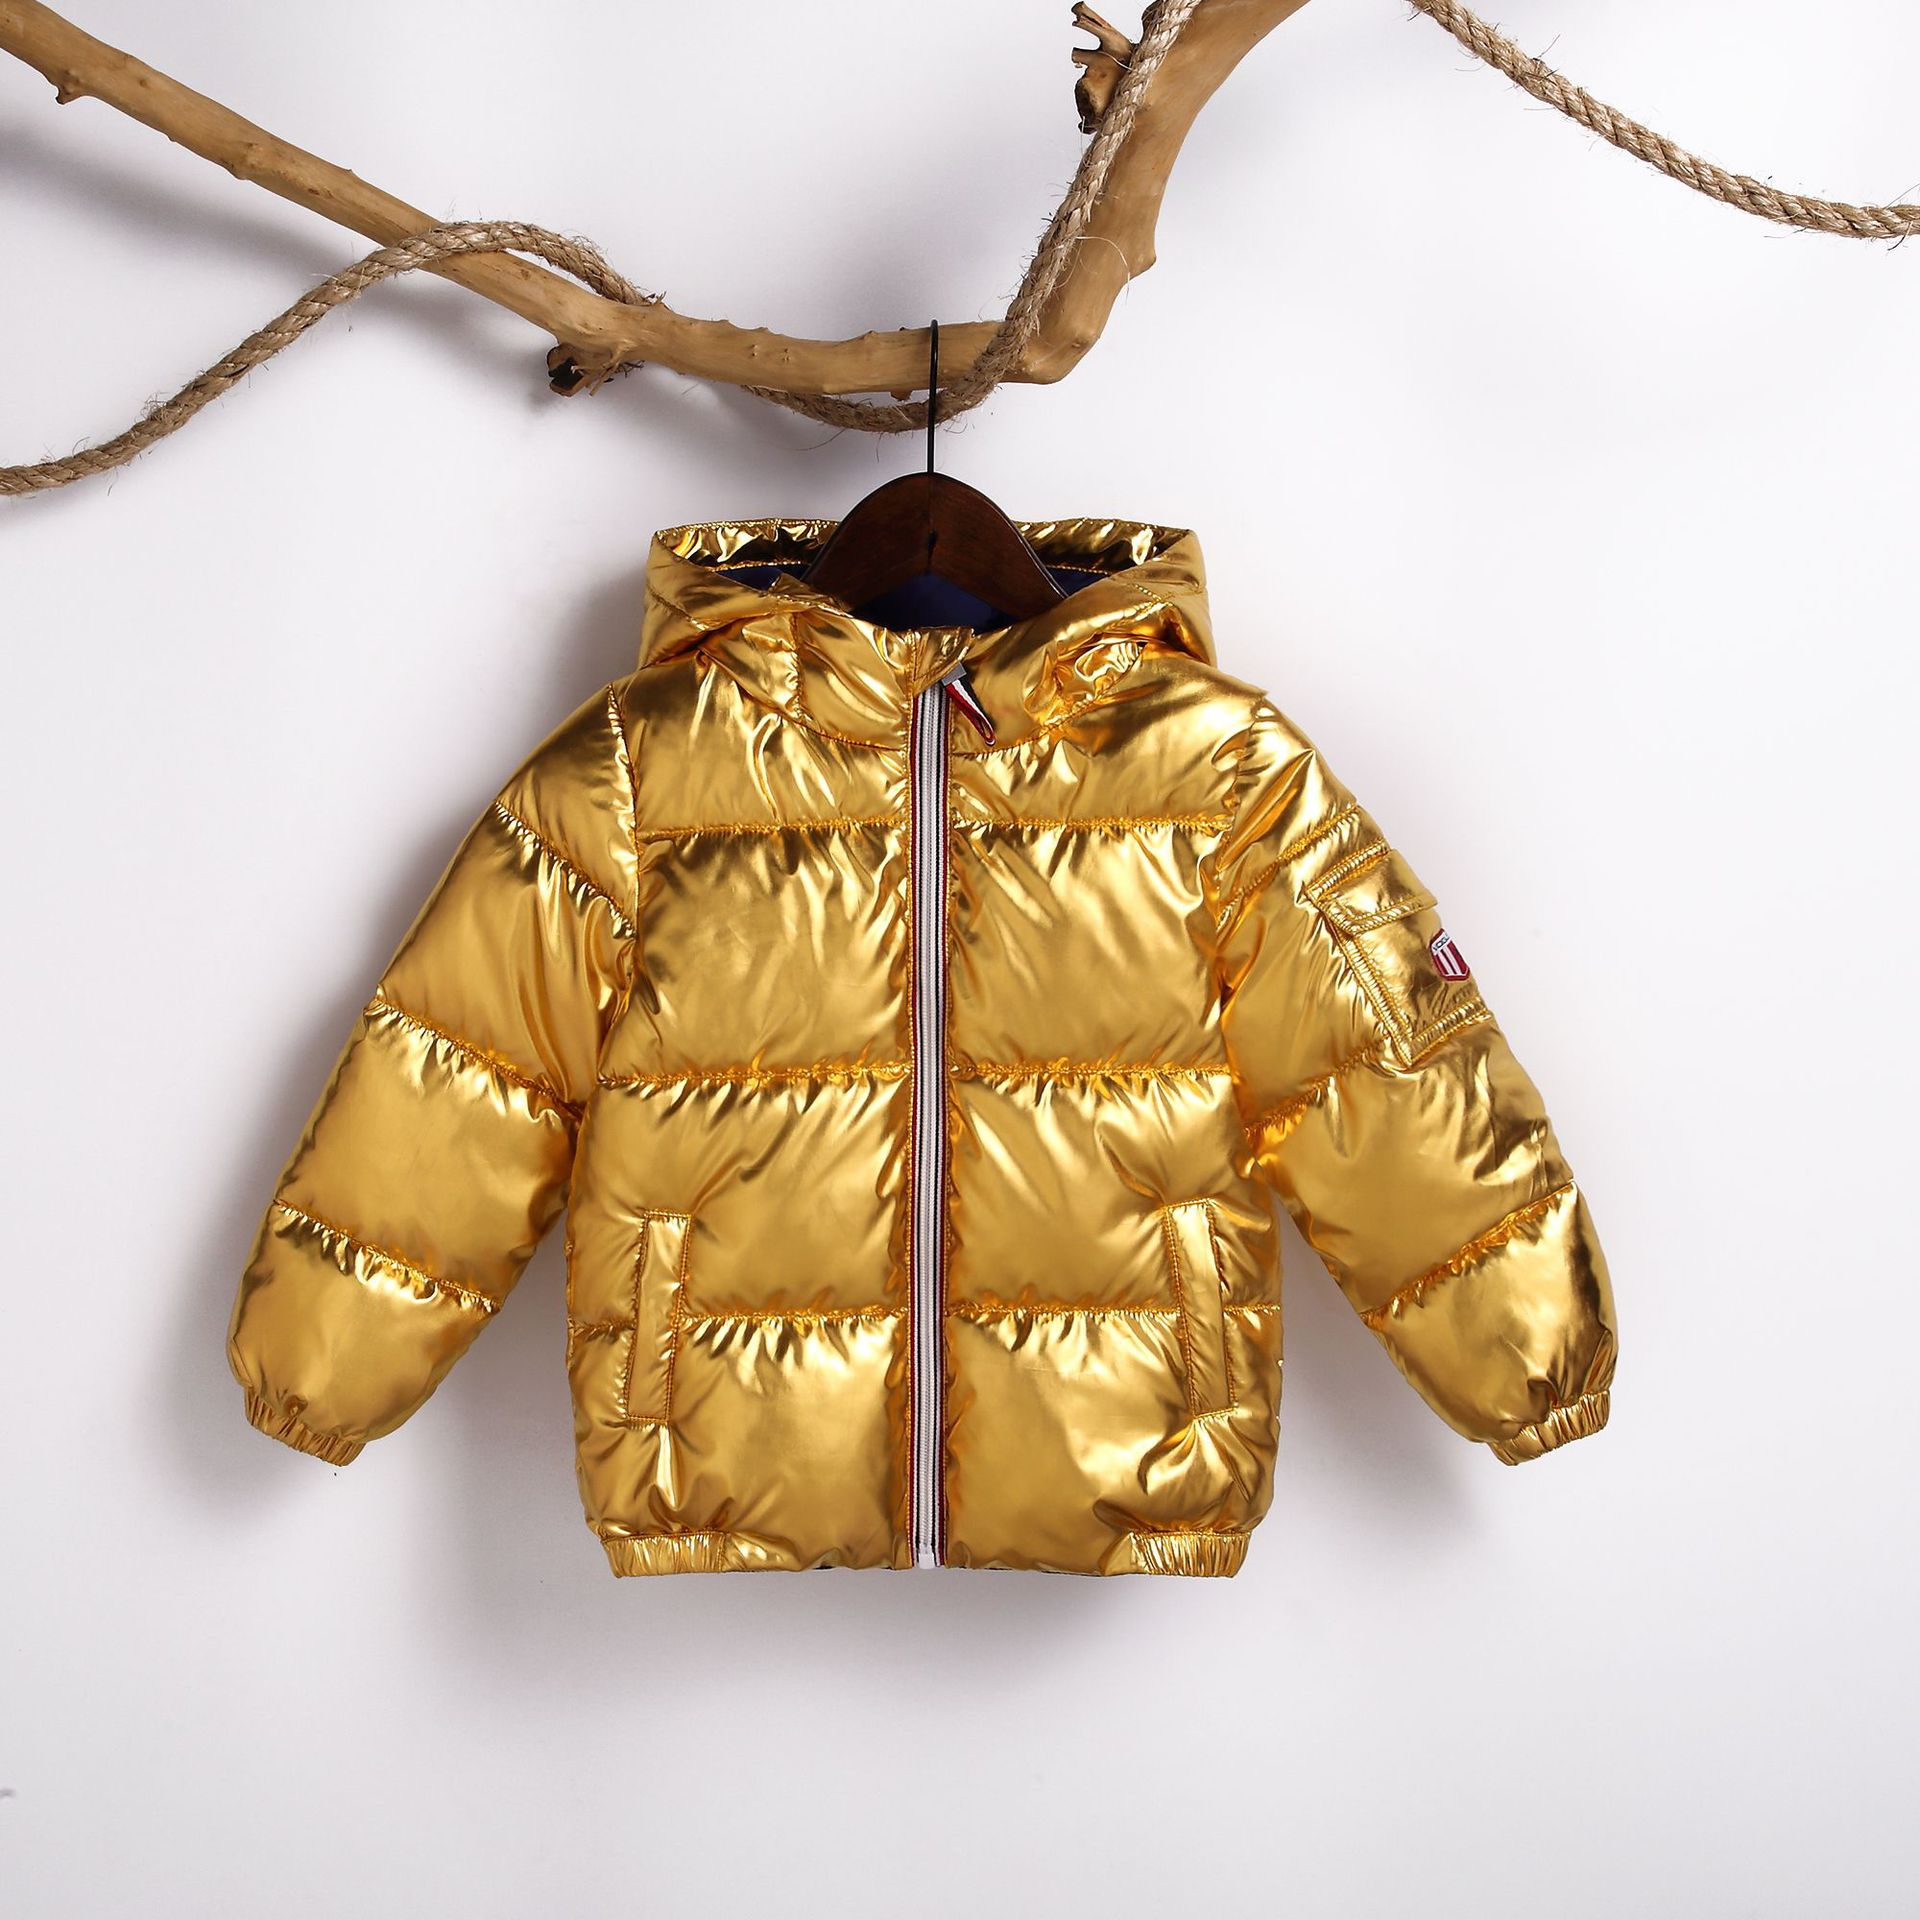 2018 Winter Down Jacket Parka for Girls Boys Coats Cotton Down Jackets Children's Clothing for Snow Wear Kids Outerwear & Coats 6 24m snow wear baby boys girls rompers down coats winter 2017 baby clothing cotton girls coats fashion baby outerwear